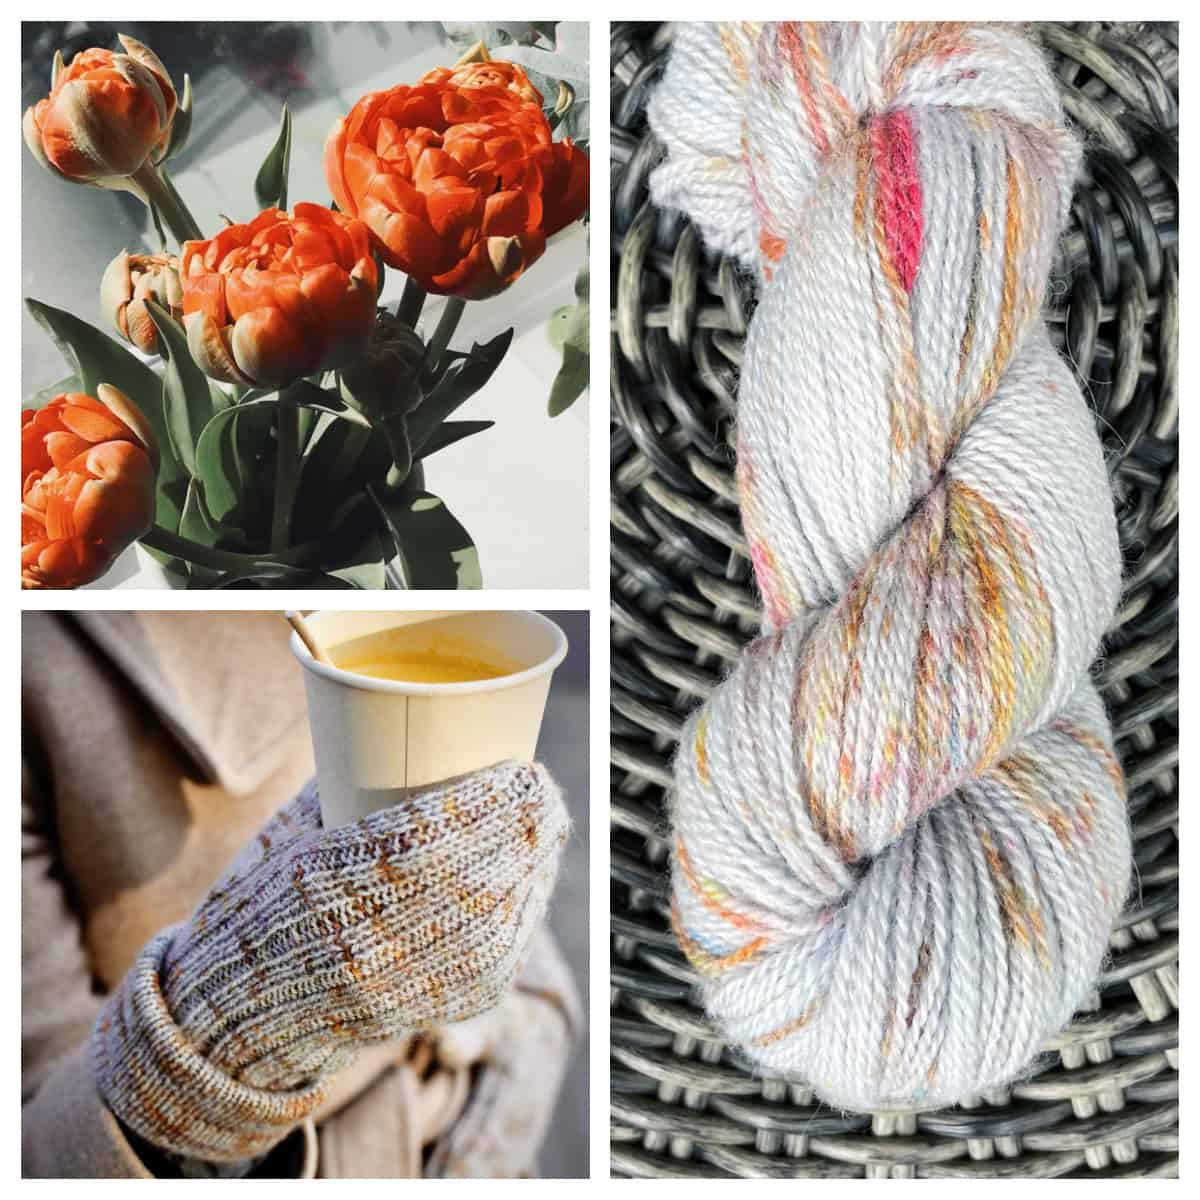 A collage of orange flowers, a hand wearing gray speckled mittens and a skein of gray yarn speckled with orange, pink and gold.